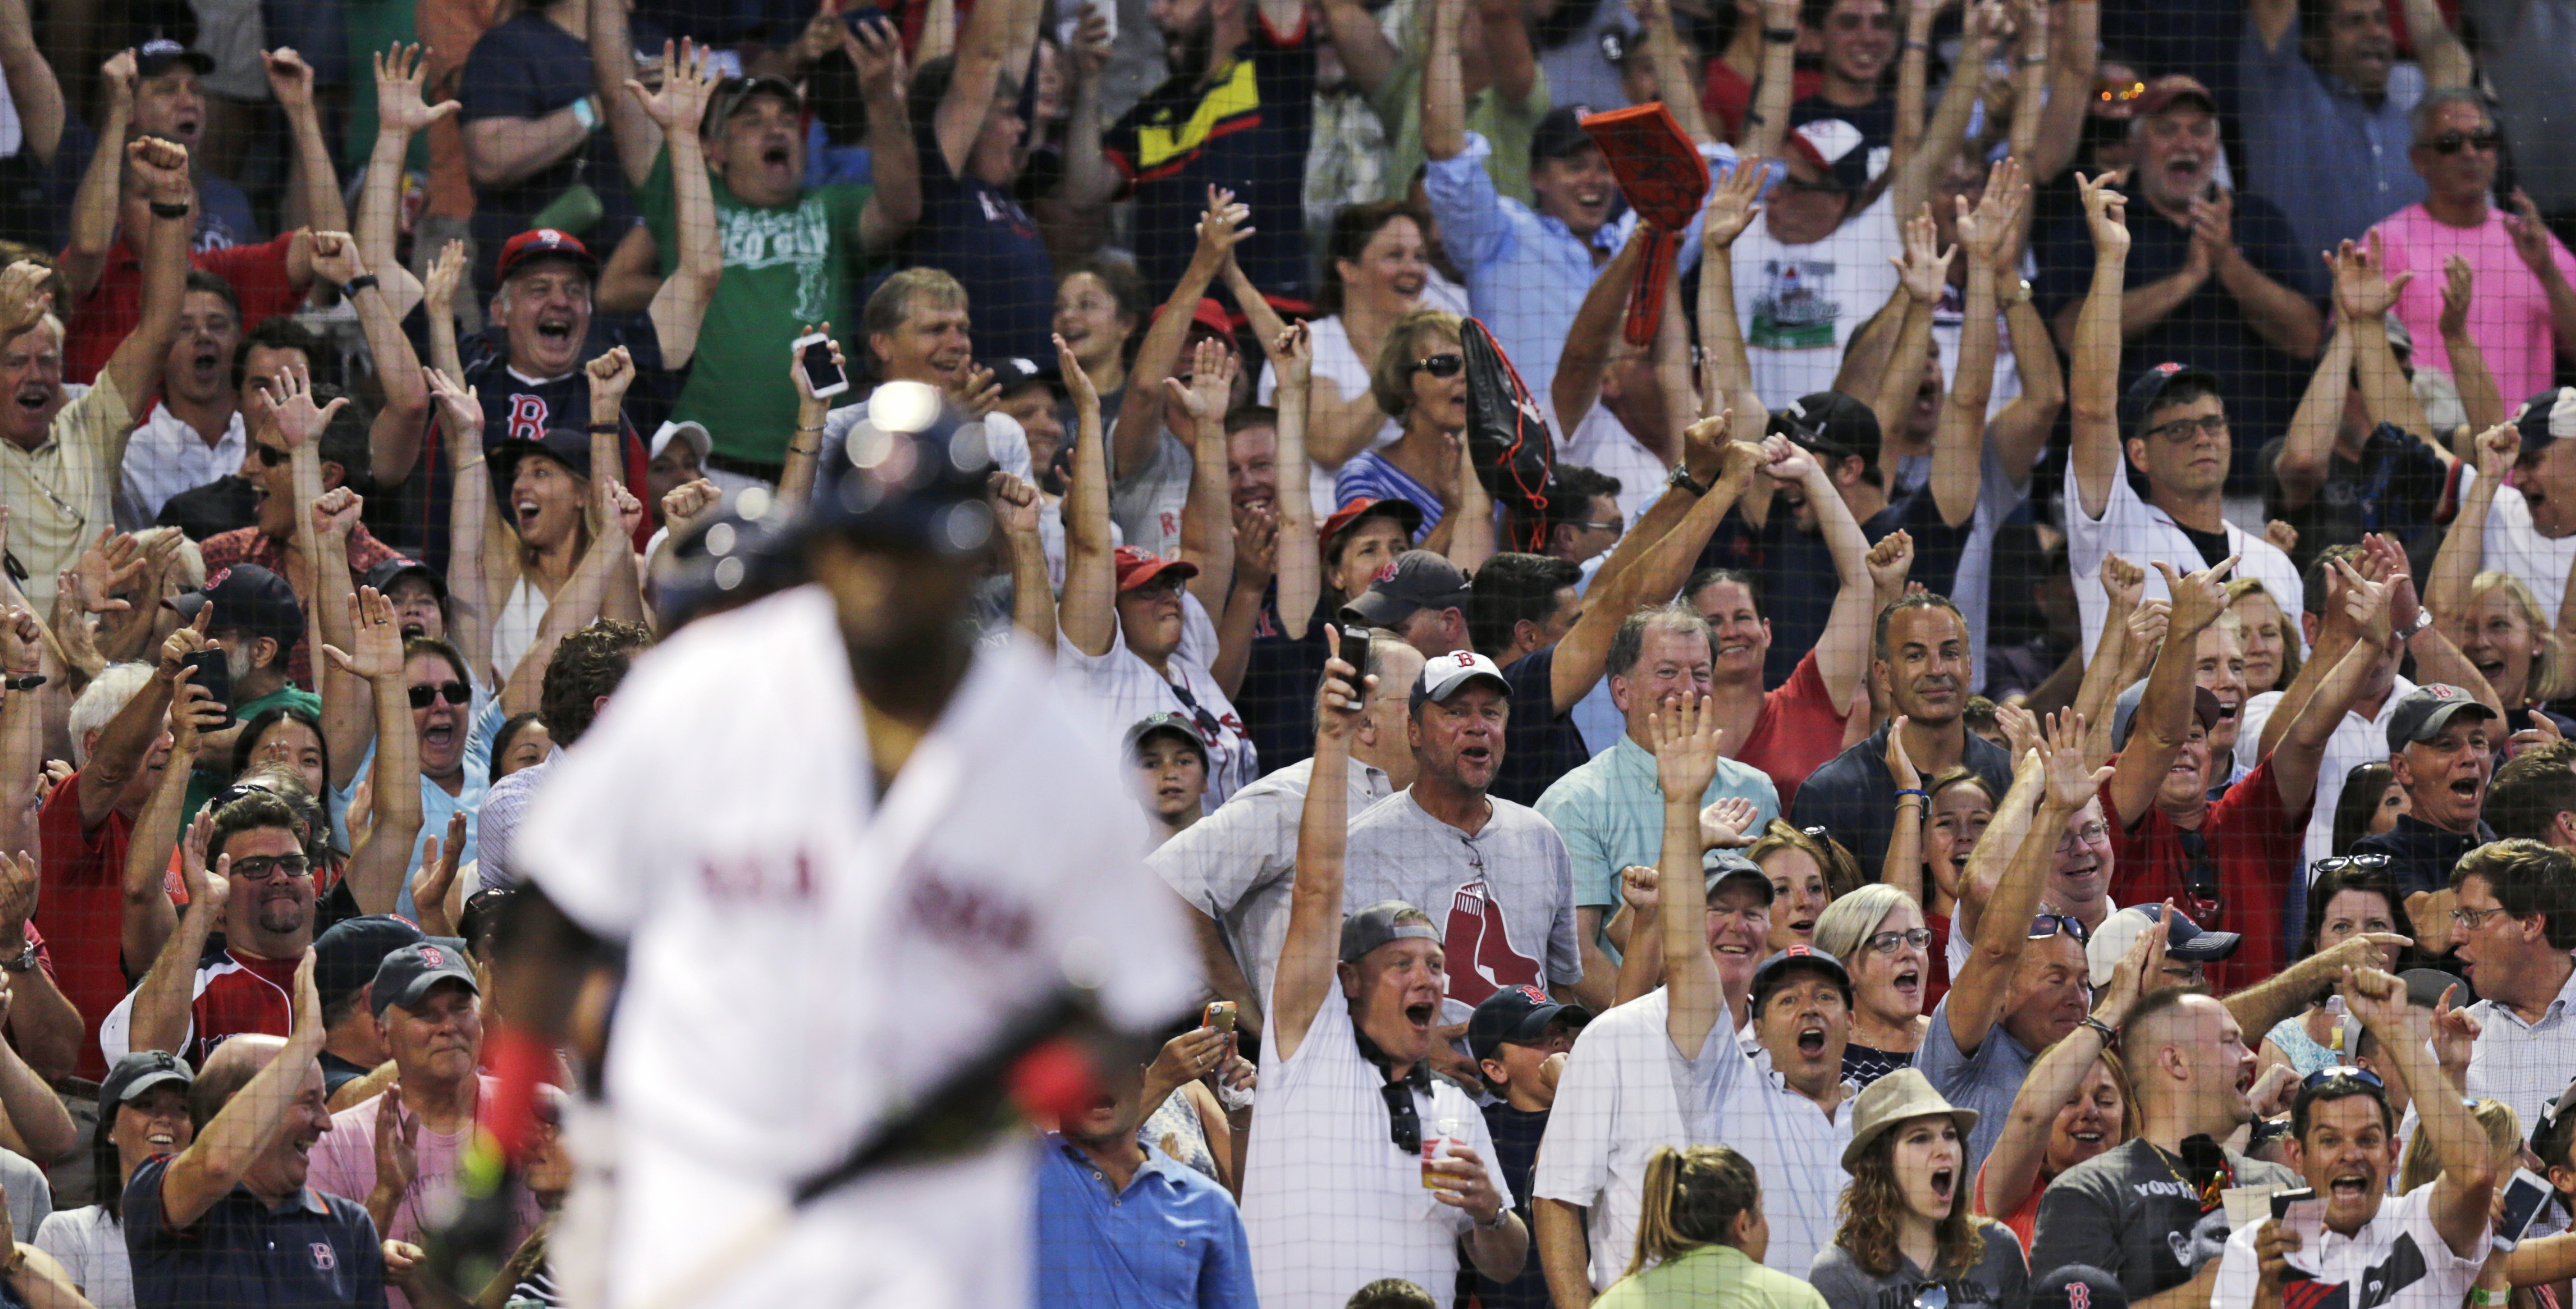 Fans celebrate after a three-run home run by Boston Red Sox designated hitter David Ortiz off Detroit Tigers starting pitcher Mike Pelfrey during the third inning of a baseball game at Fenway Park, Tuesday, July 26, 2016, in Boston. (AP Photo/Charles Krup